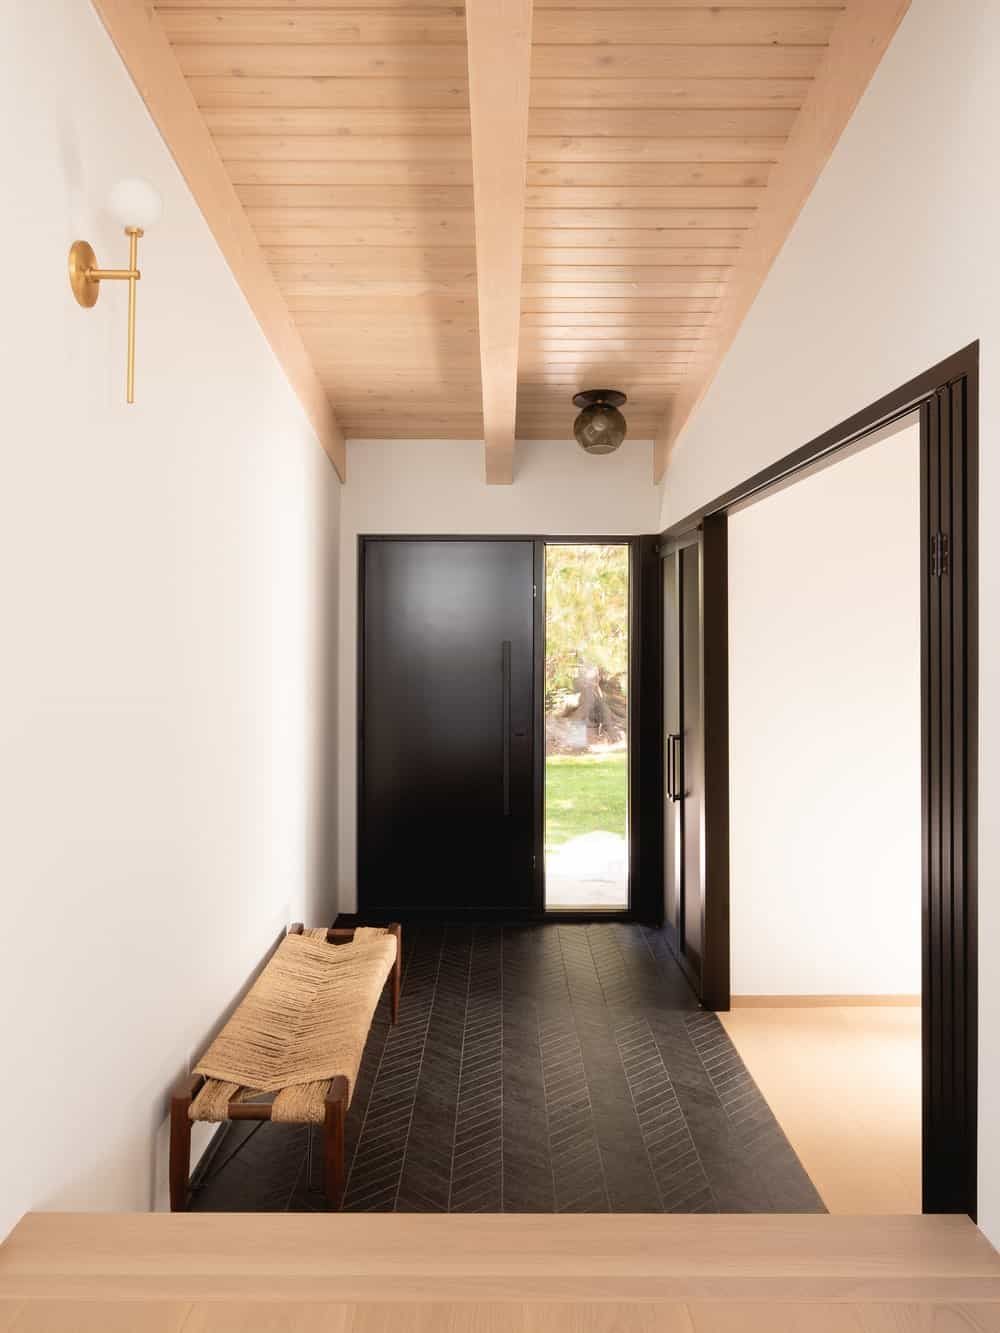 Upon entry of the house, you are welcomed by this simple foyer that has a bench on the side. It stands out against the dark hardwood flooring that matches with the main door.